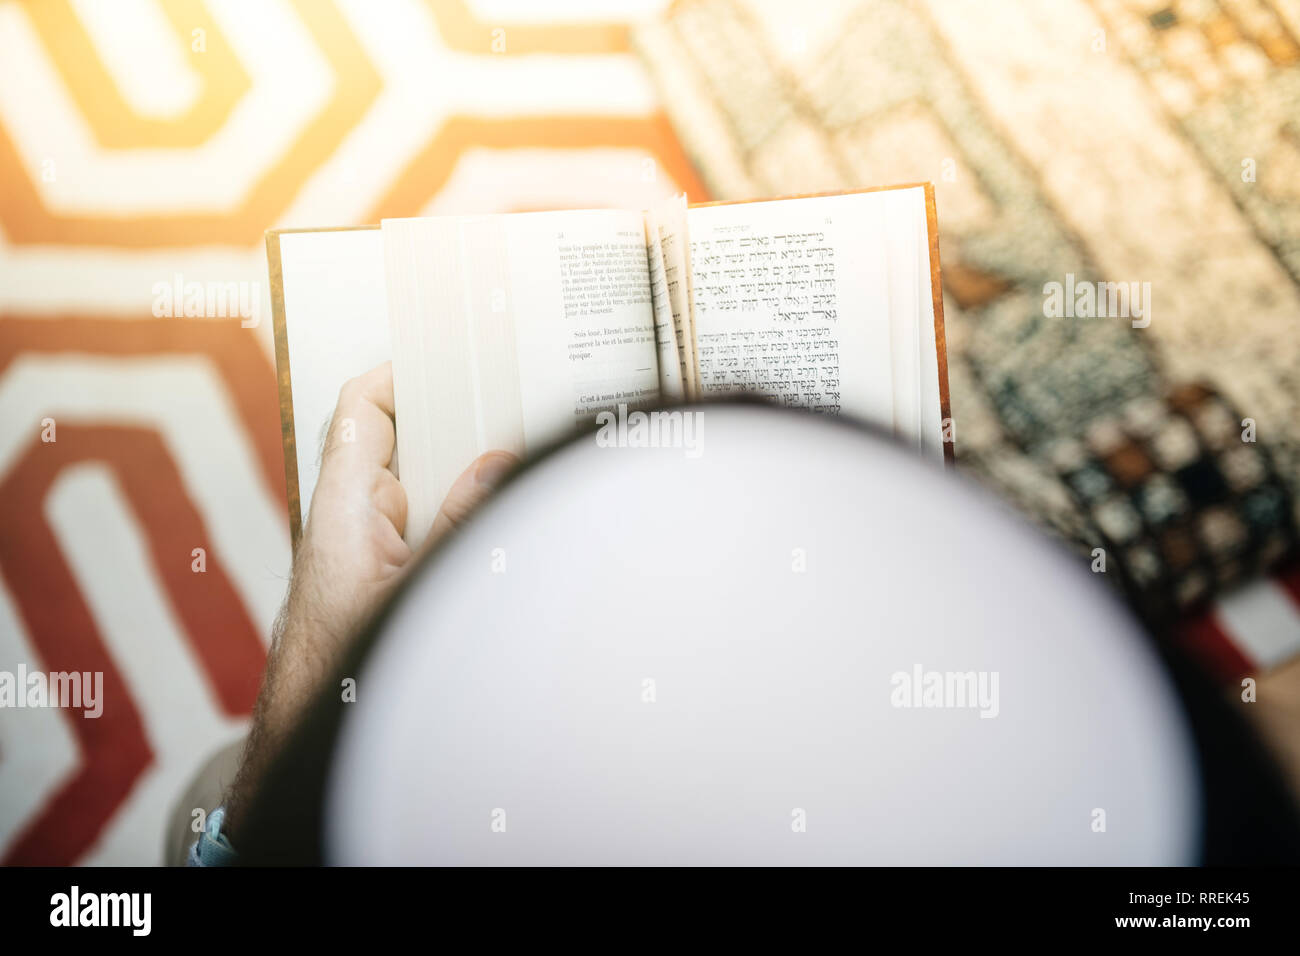 View from above of Jewish male wearing Kippah praying reading Bi-lingual Hebrew French mahzor prayer book from 1920 used on the High Holy Days of Rosh Hashanah and Yom Kippur lens flare sunlight - Stock Image